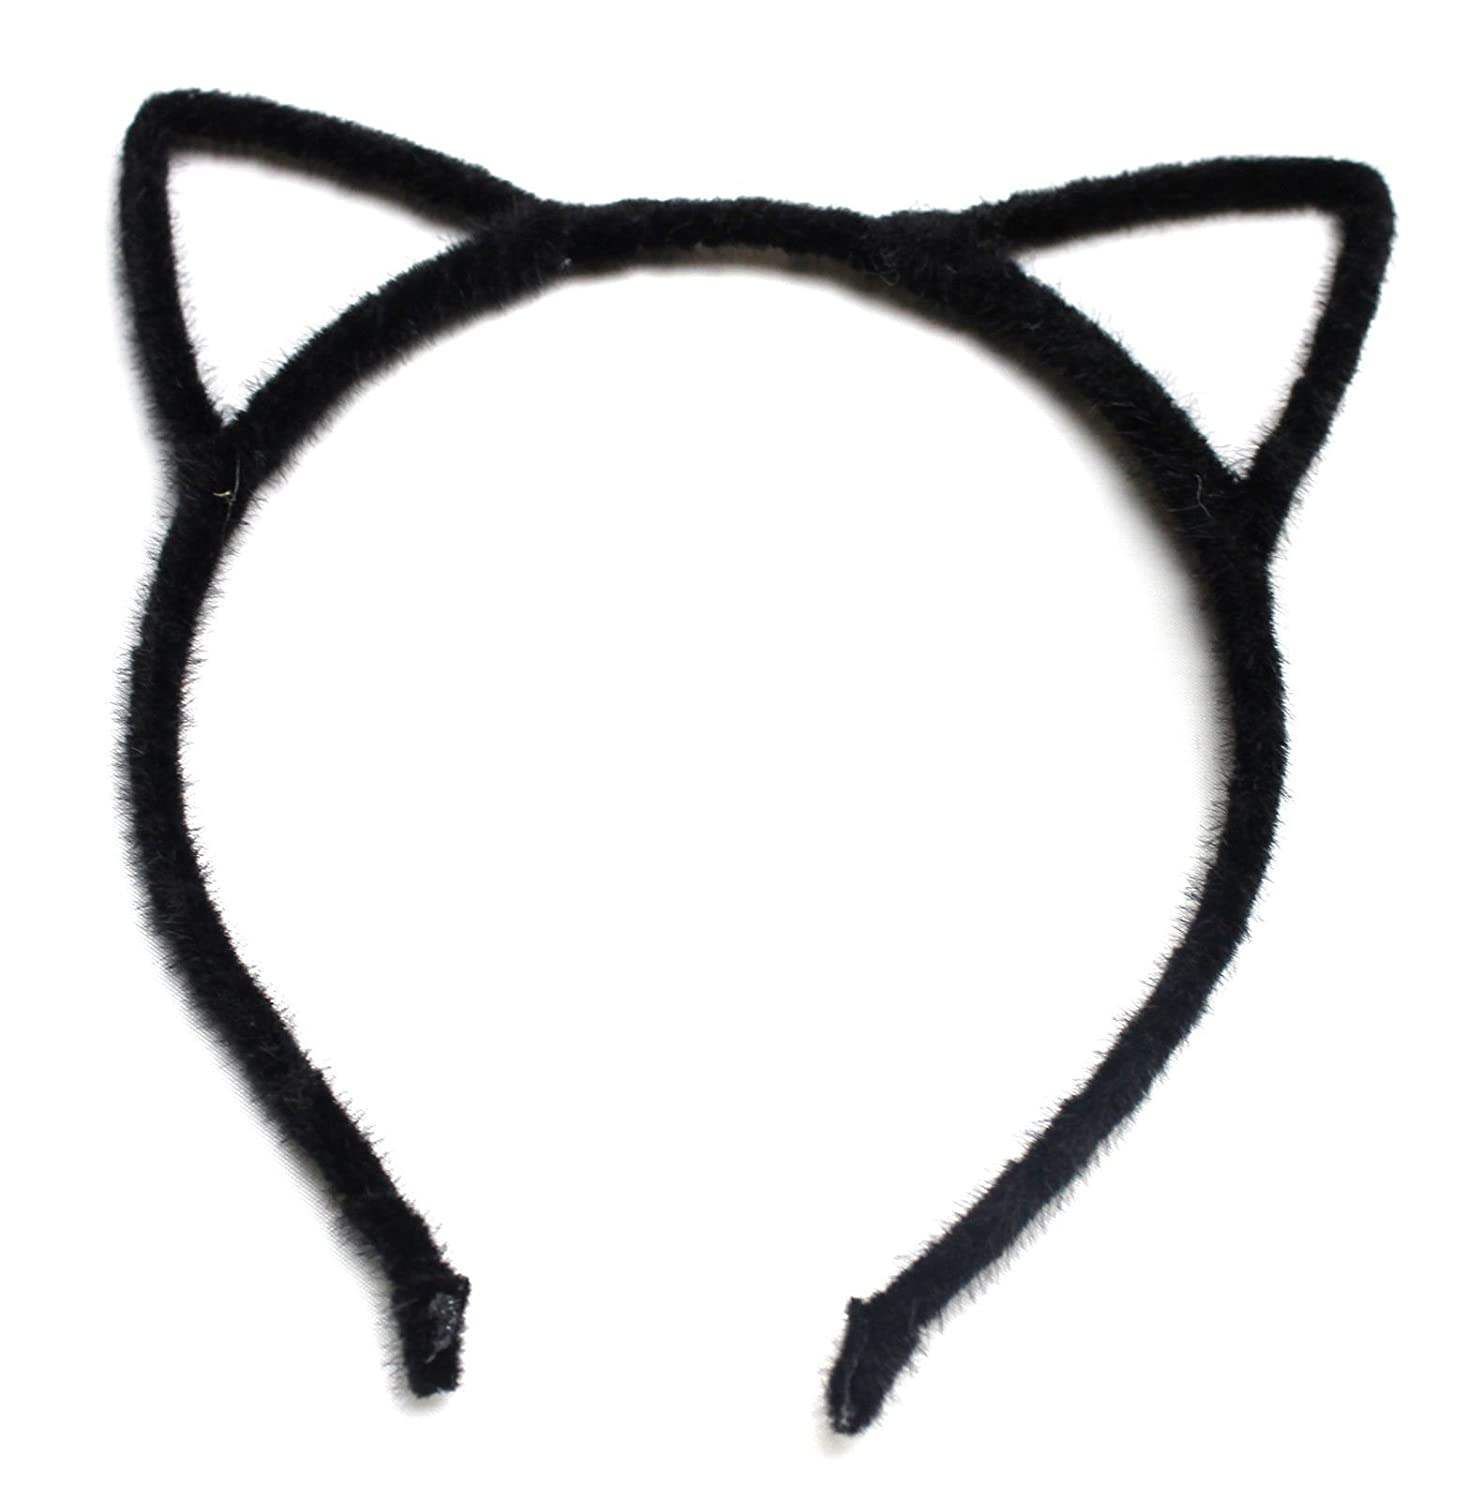 Black Hens Night Party Alice Band Cat Ear Headband Hair Women Hair Accessories Design Party Felt Wire blackcatears